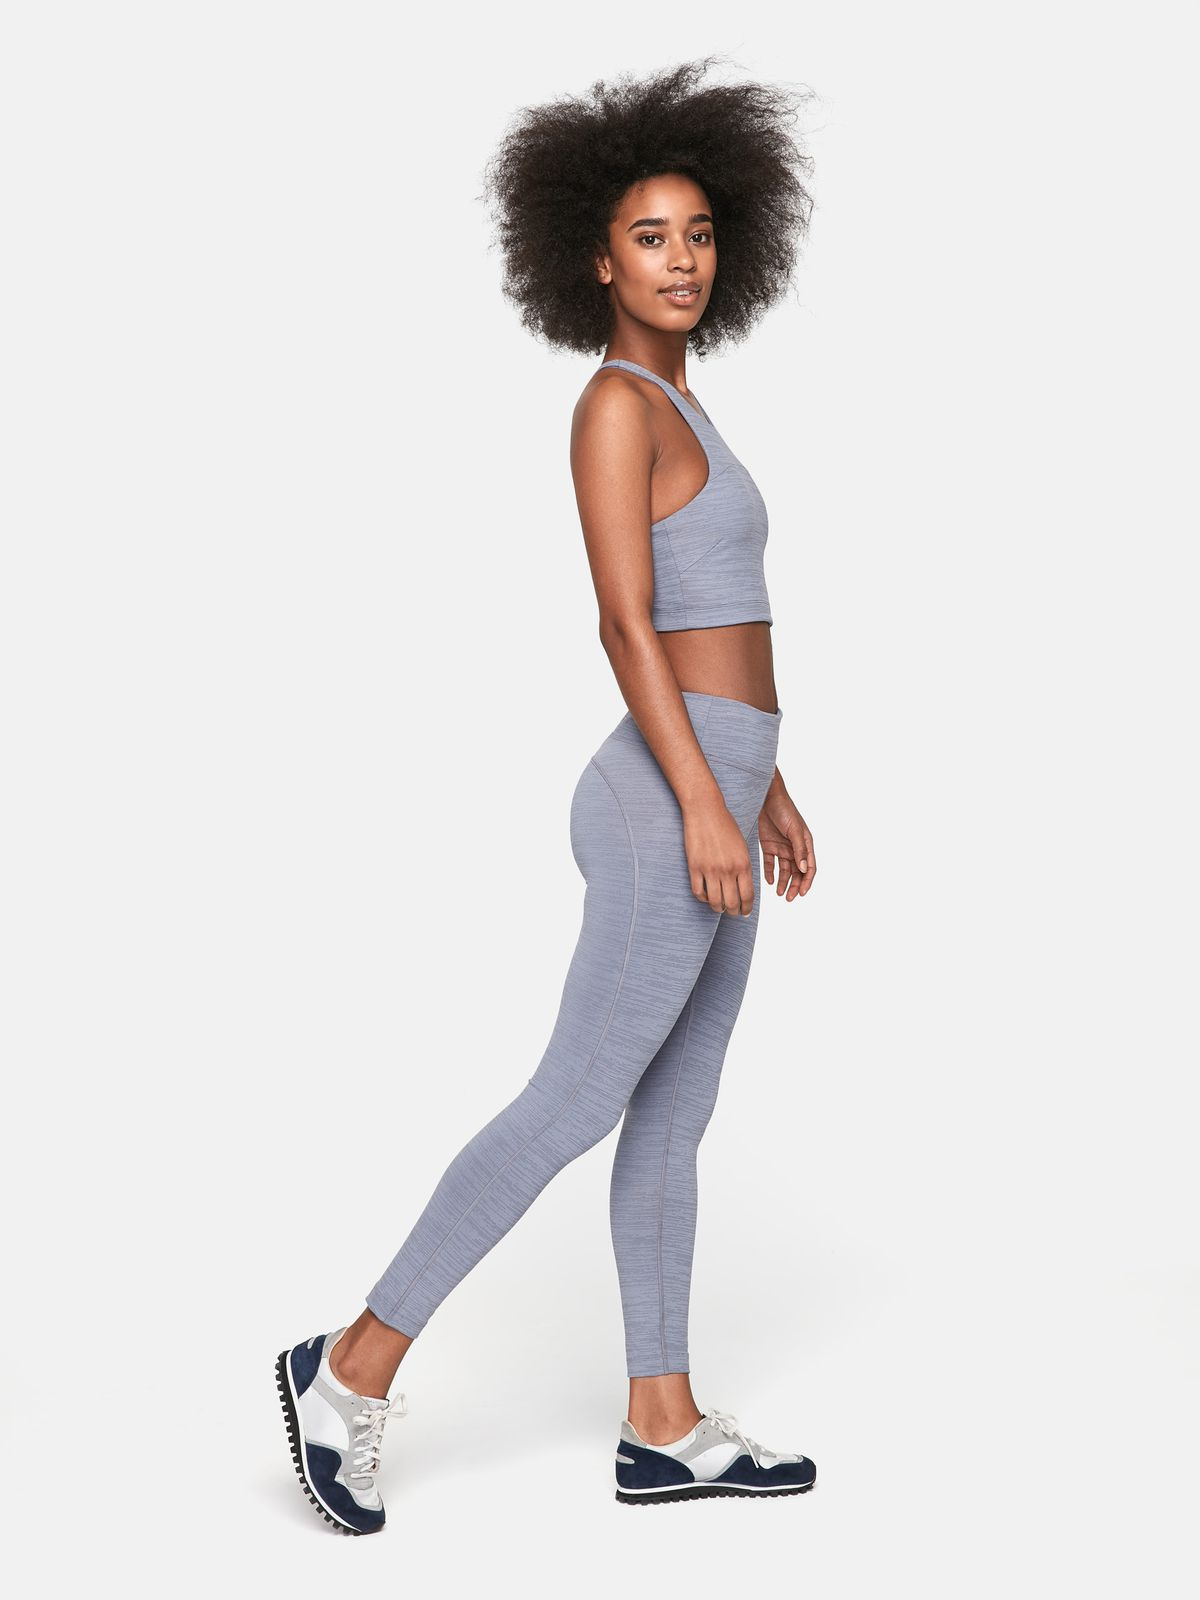 5f7011cc2 A model wears a gray-blue crop top and a matching pair of leggings.